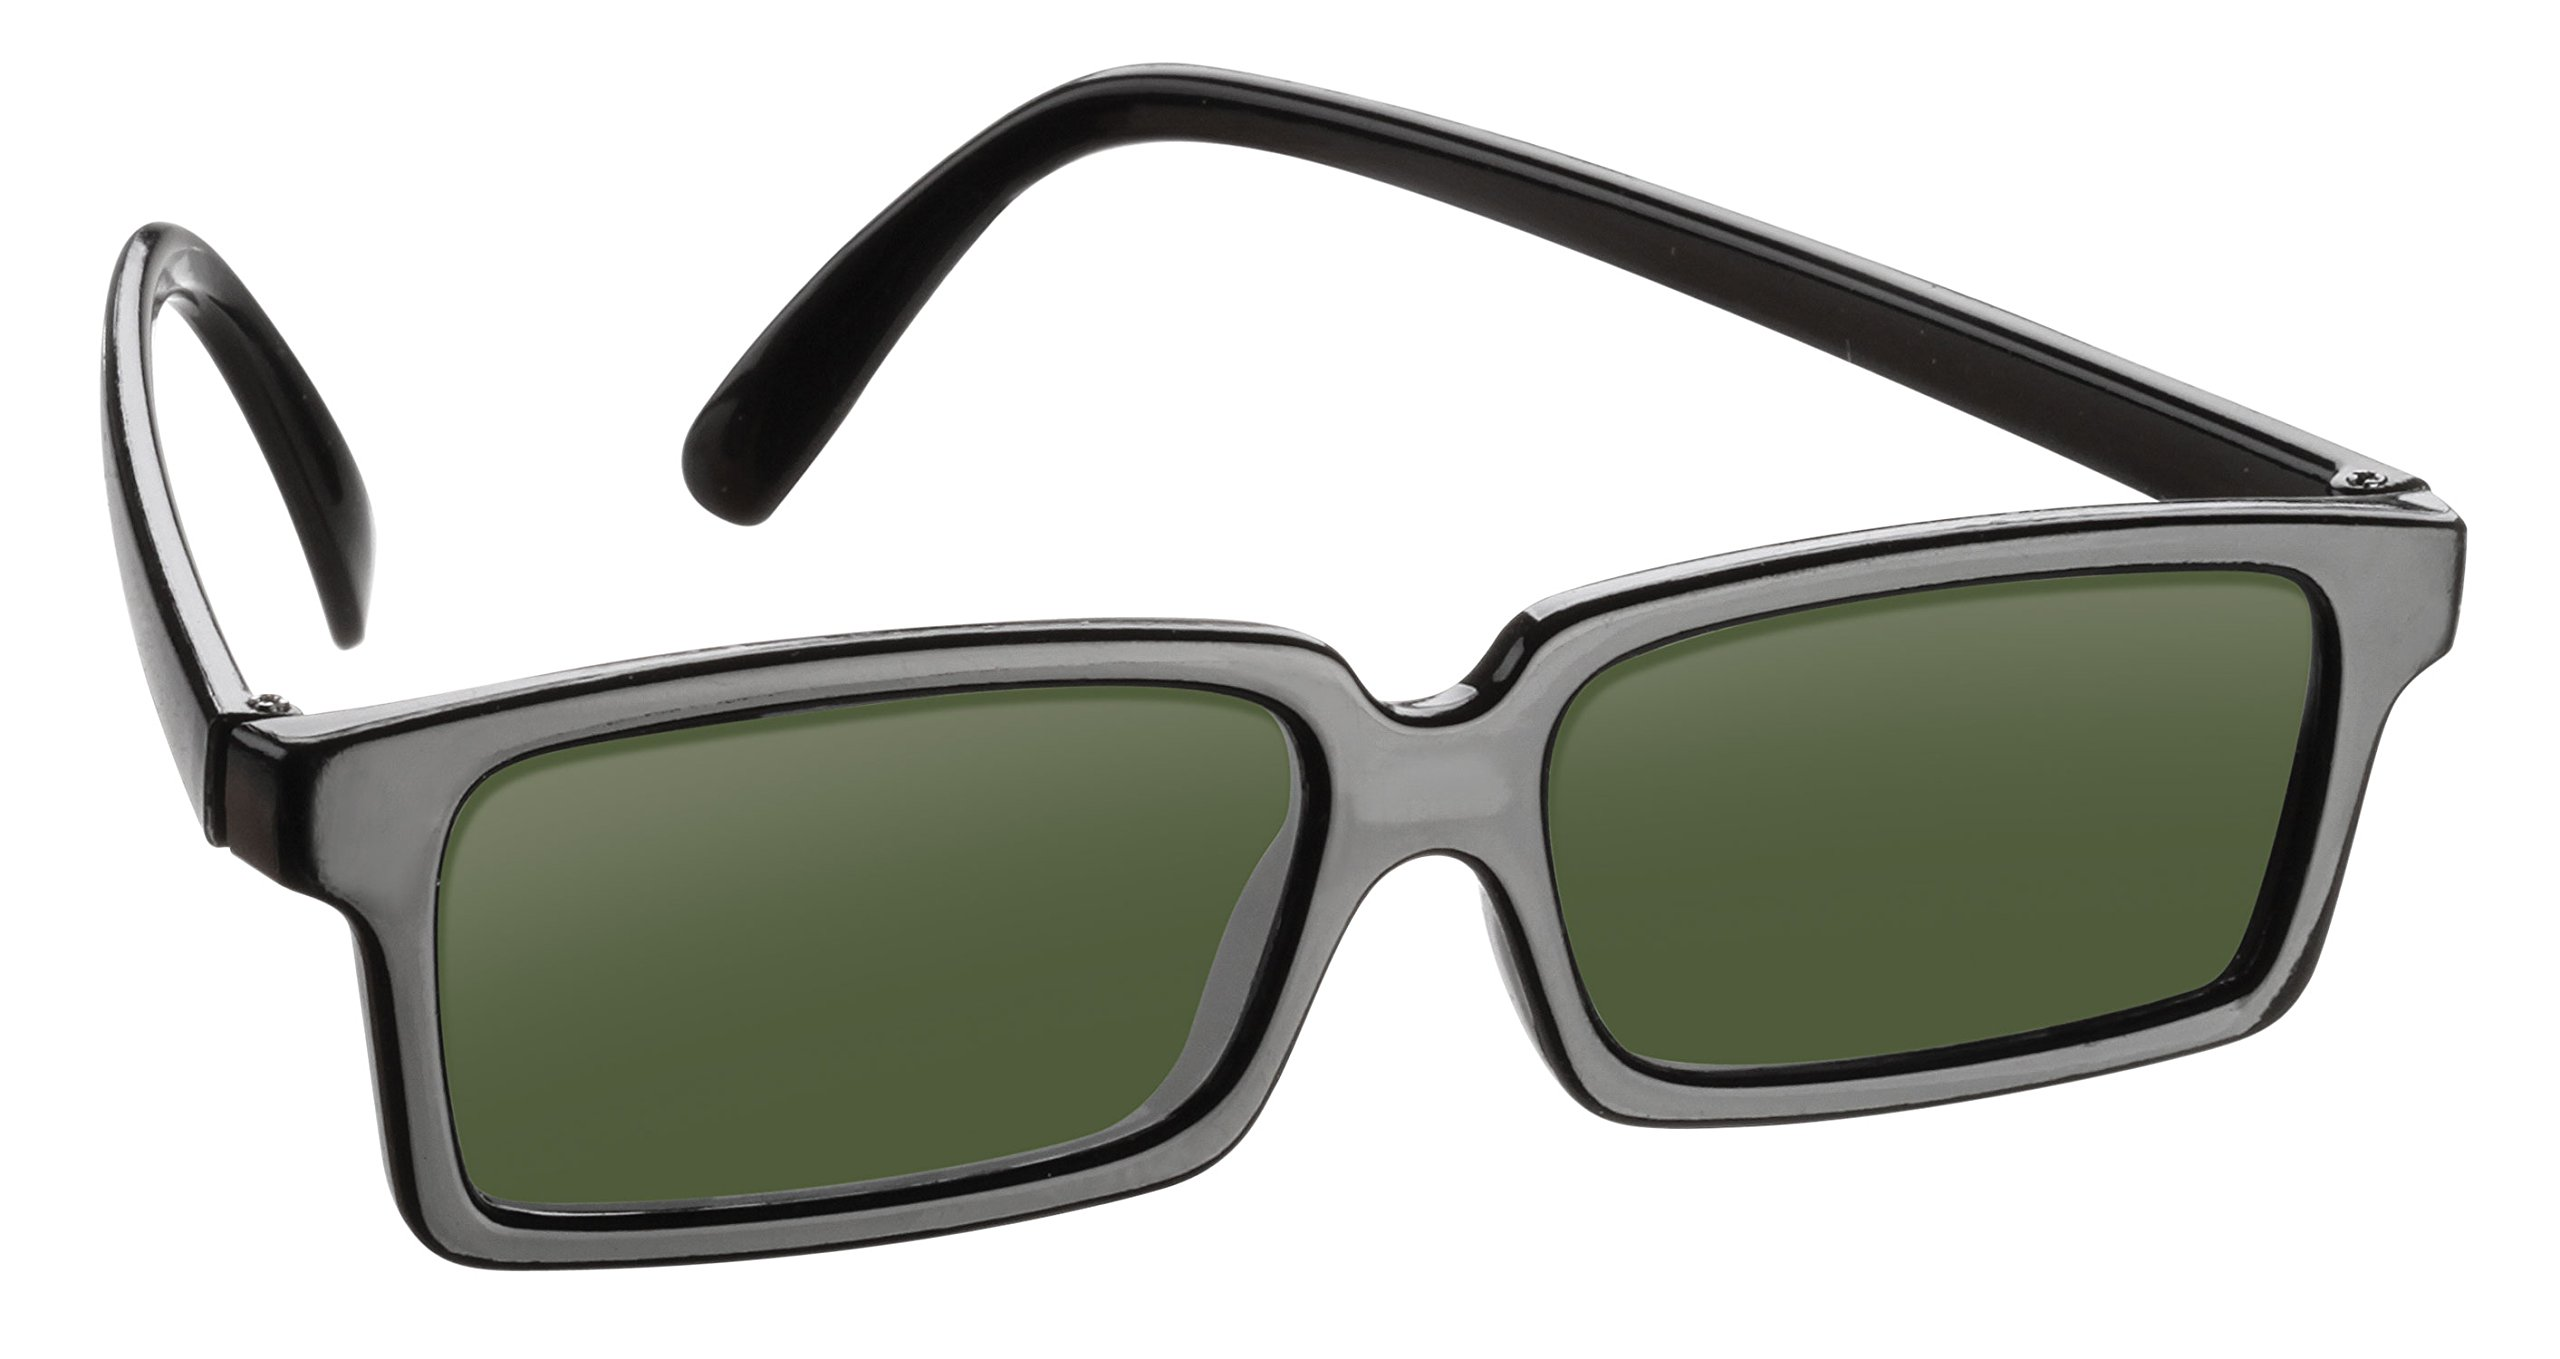 d739a8802f Rear View Spy Sunglasses Look Like Ordinary Sunglasses but Have a Mirror on  Side Ends to